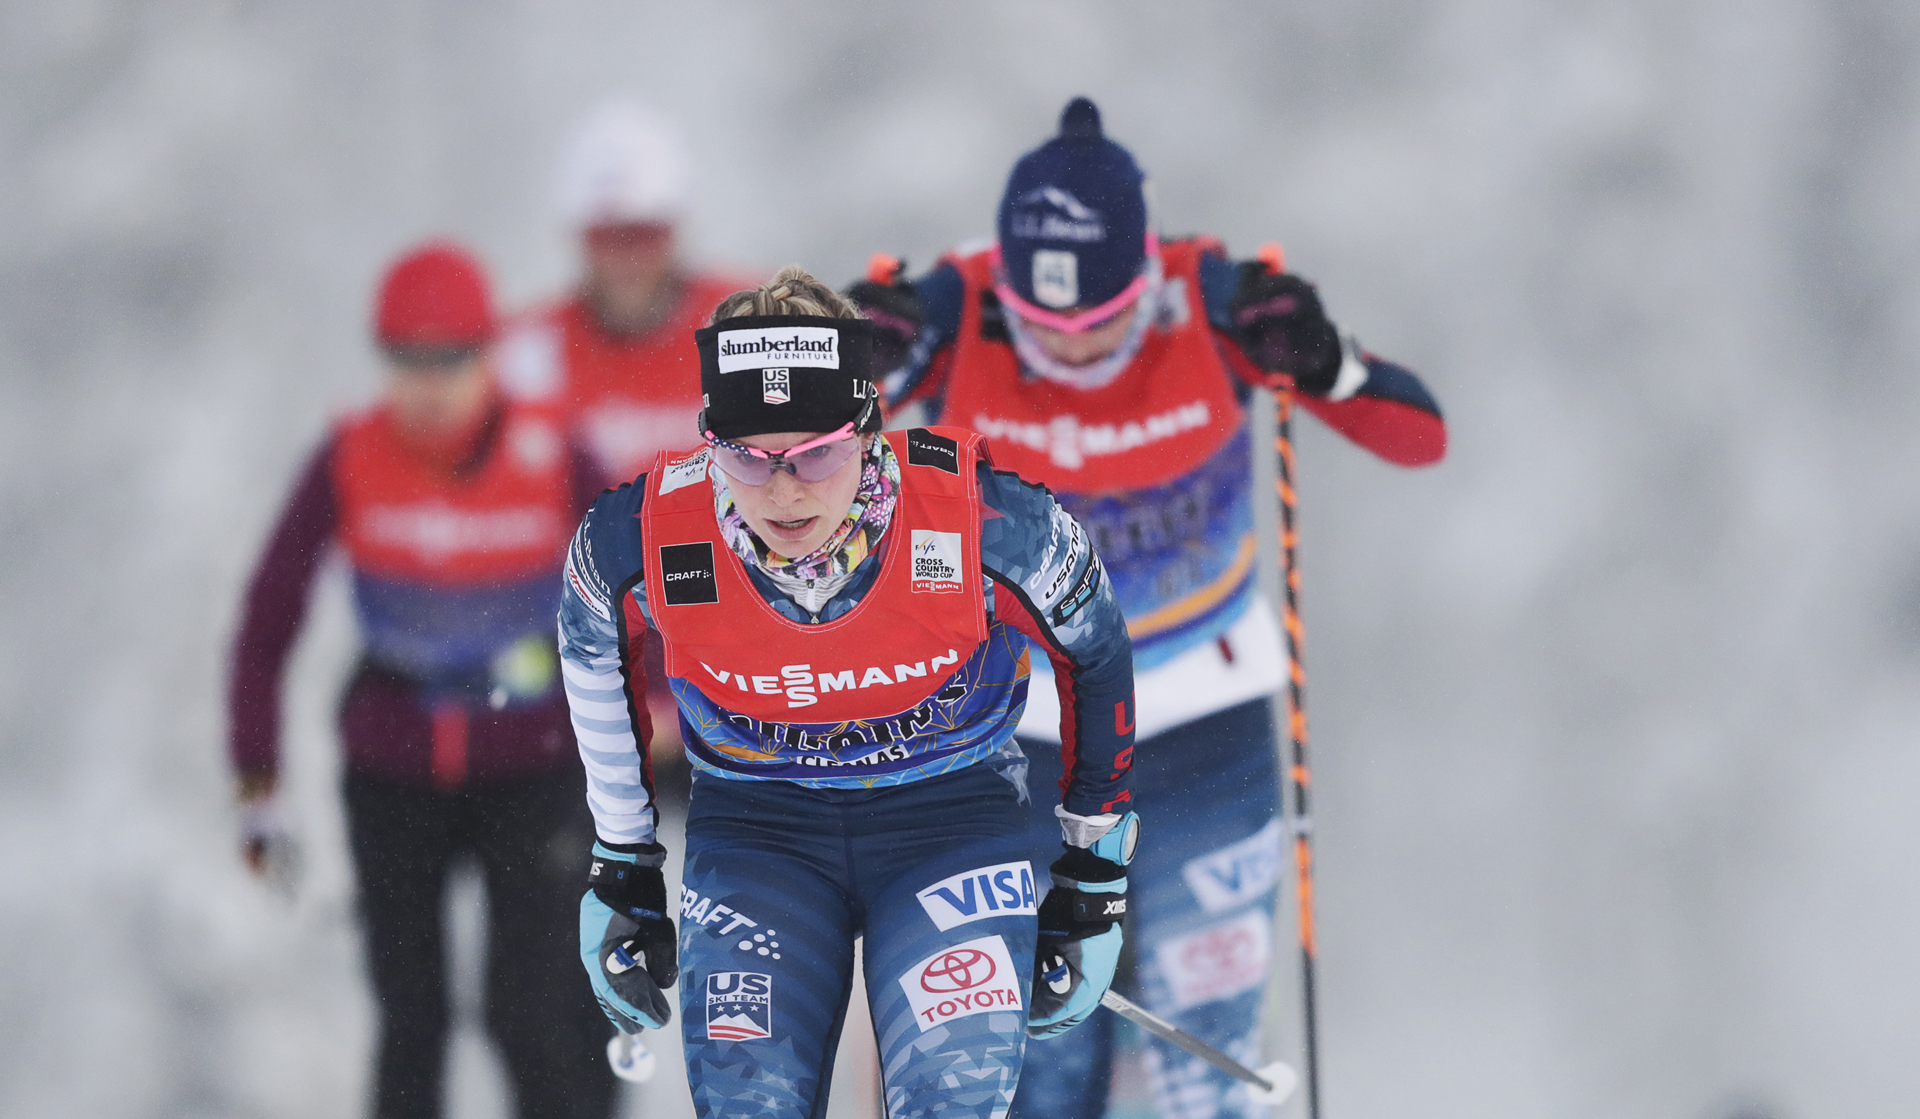 The young biathlete showed great promise. The next day, she was found dead in her parents&#39